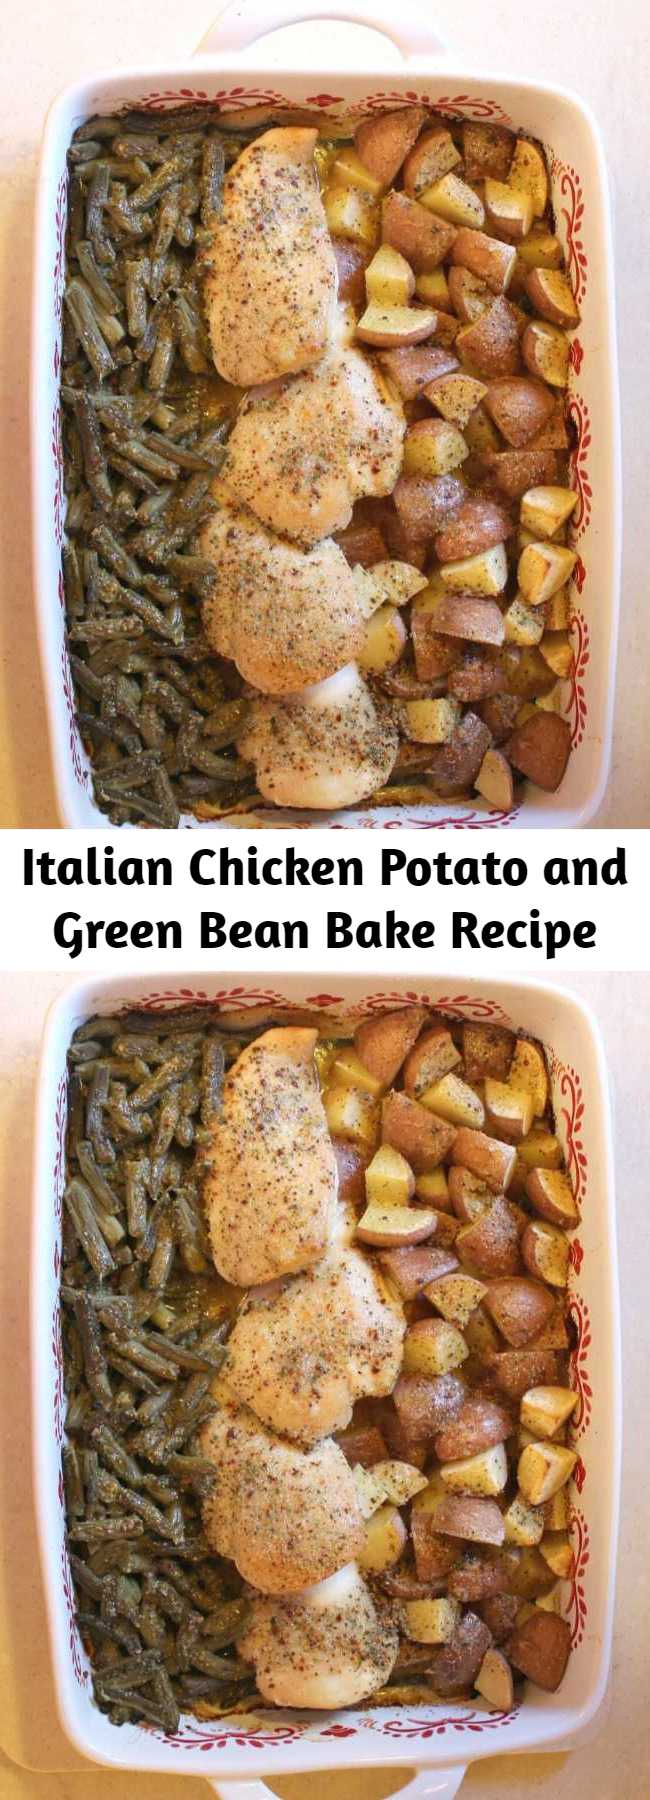 Italian Chicken Potato and Green Bean Bake Recipe - Easy weeknight meal all in one dish. Perfectly seasoned chicken, potatoes, and veggies makes a kid and adult favorite.